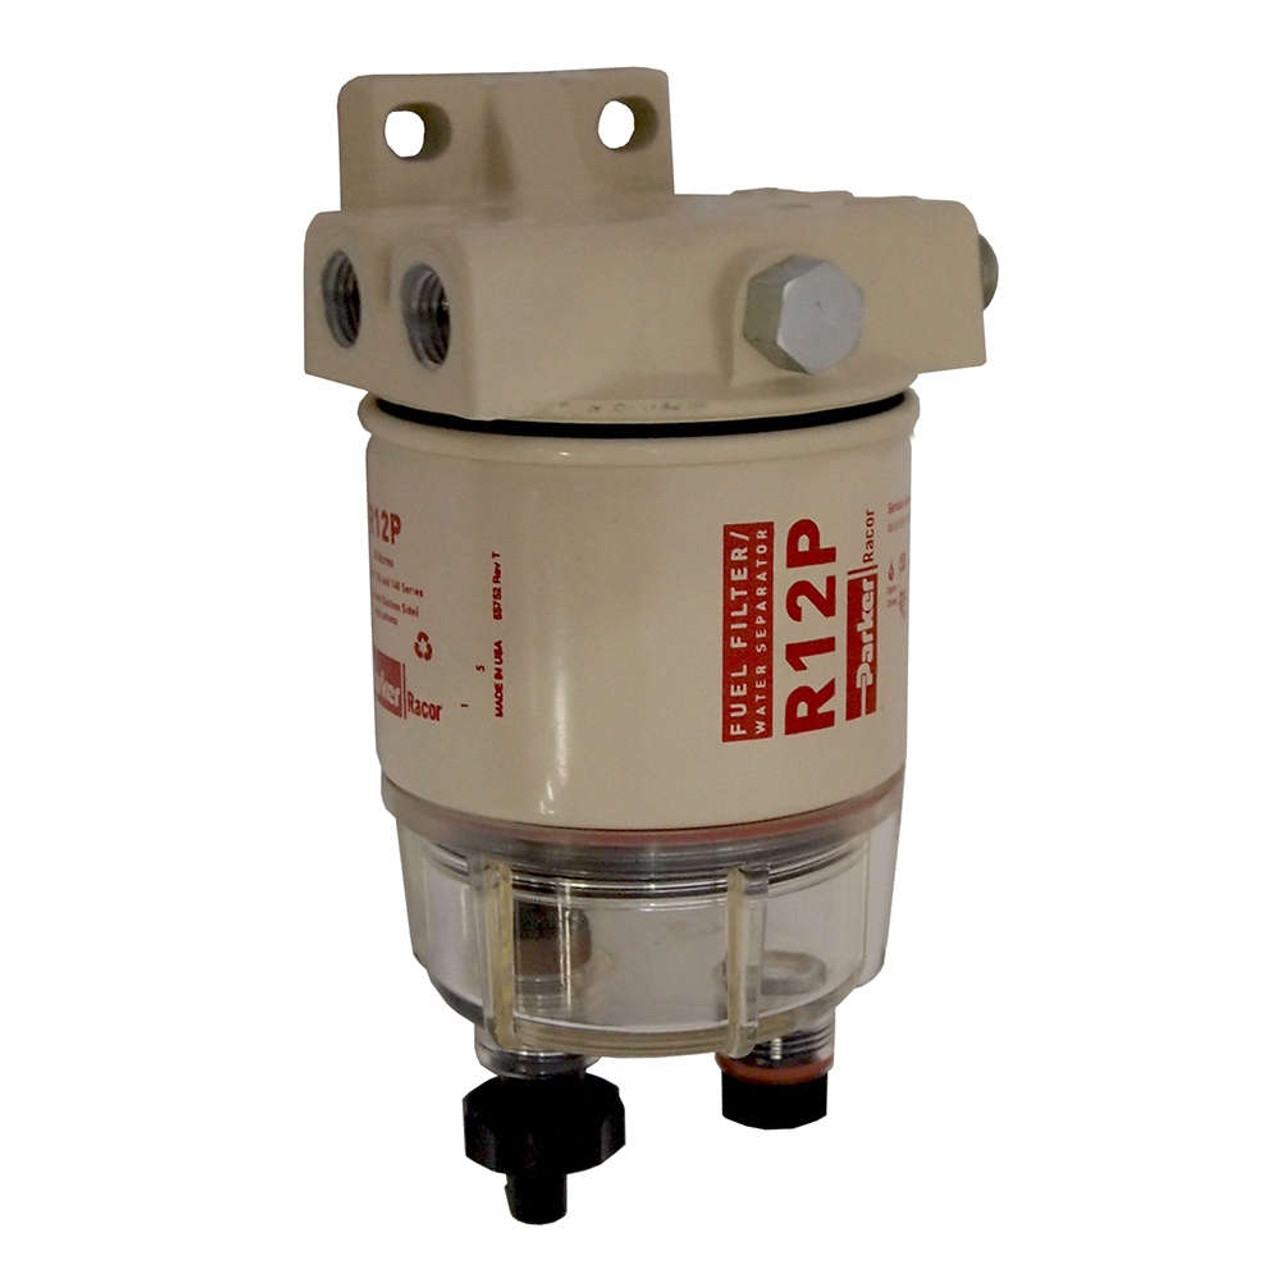 Racor 120a Low Flow Fuel Filter Water Separator Assembly 30 Micron